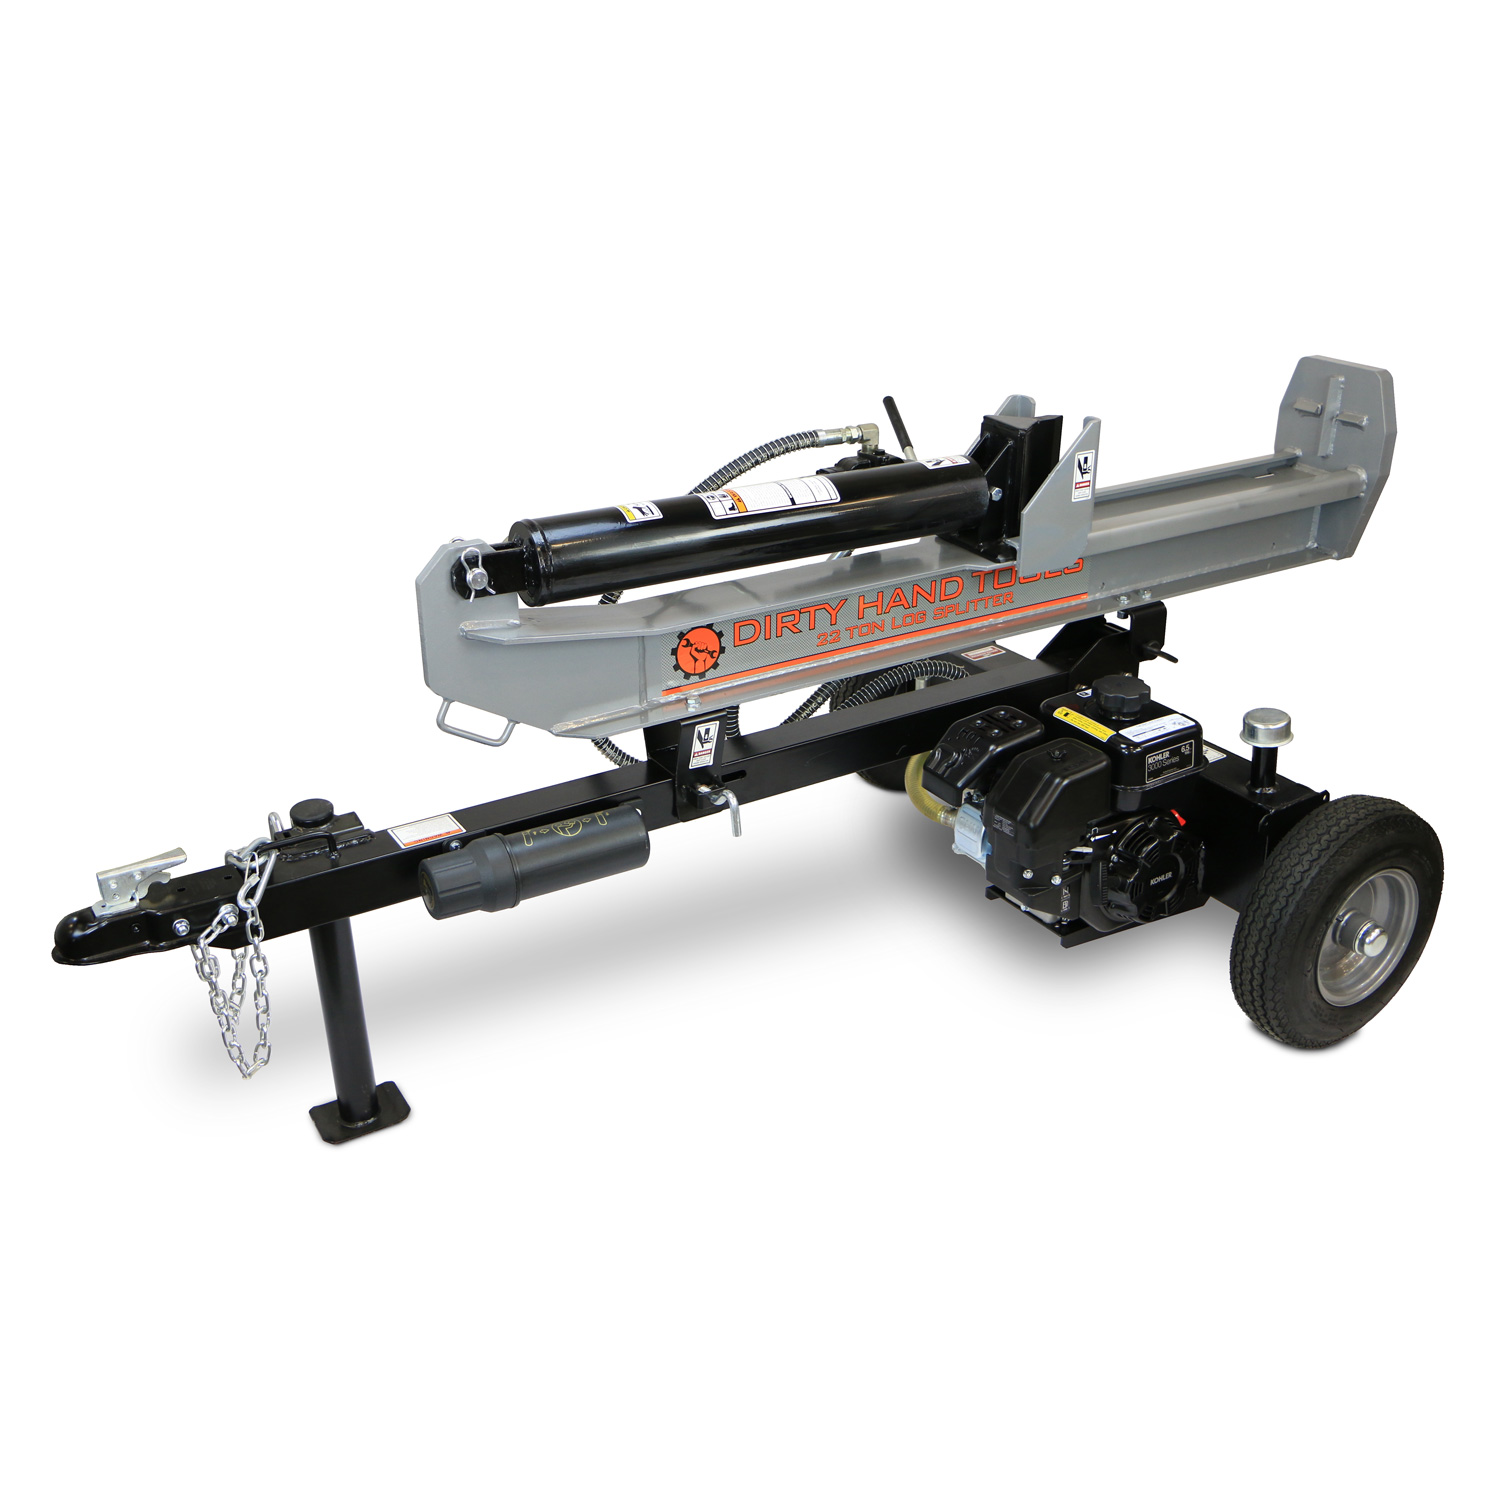 hight resolution of 22 ton horizontal vertical log splitter kohler engine dirty hand tools colorado usa